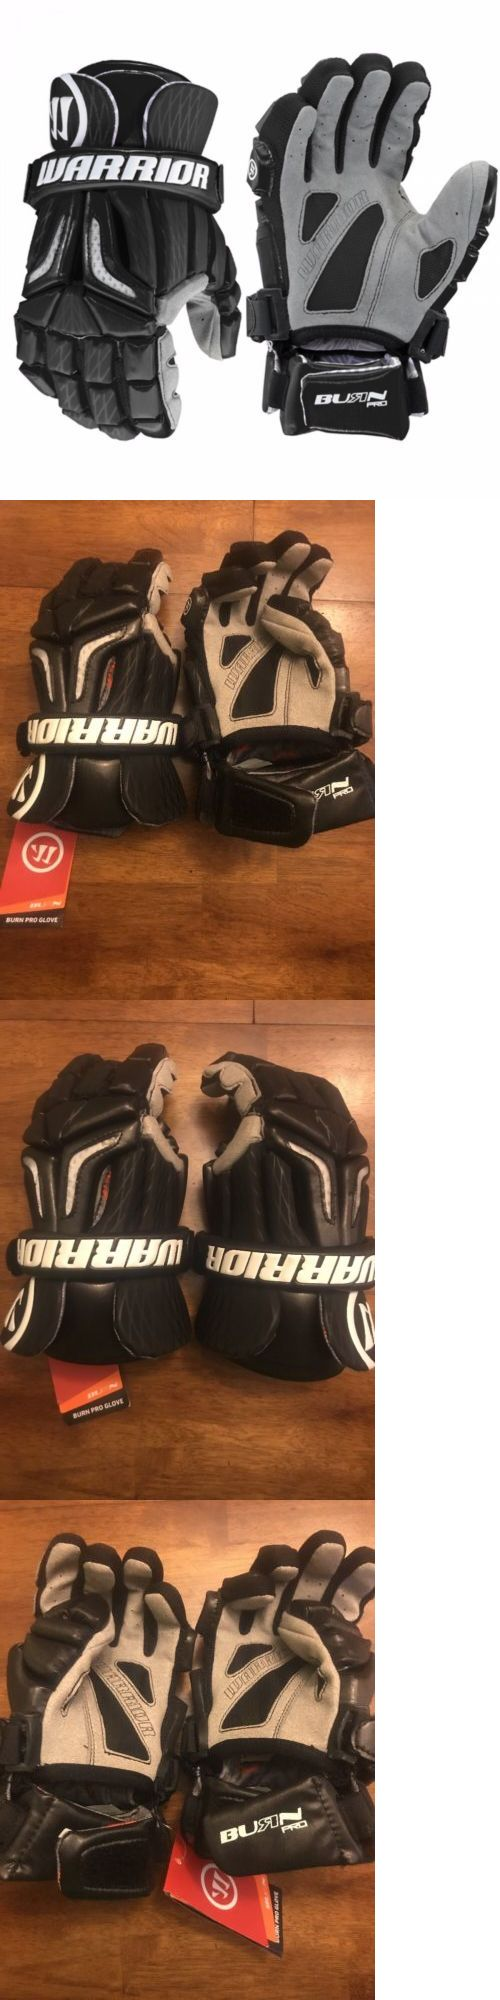 Protective Gear 62164: Brand New! Warrior Burn Pro Lacrosse Gloves Size Adult Large L Black And Gray -> BUY IT NOW ONLY: $59.99 on eBay!